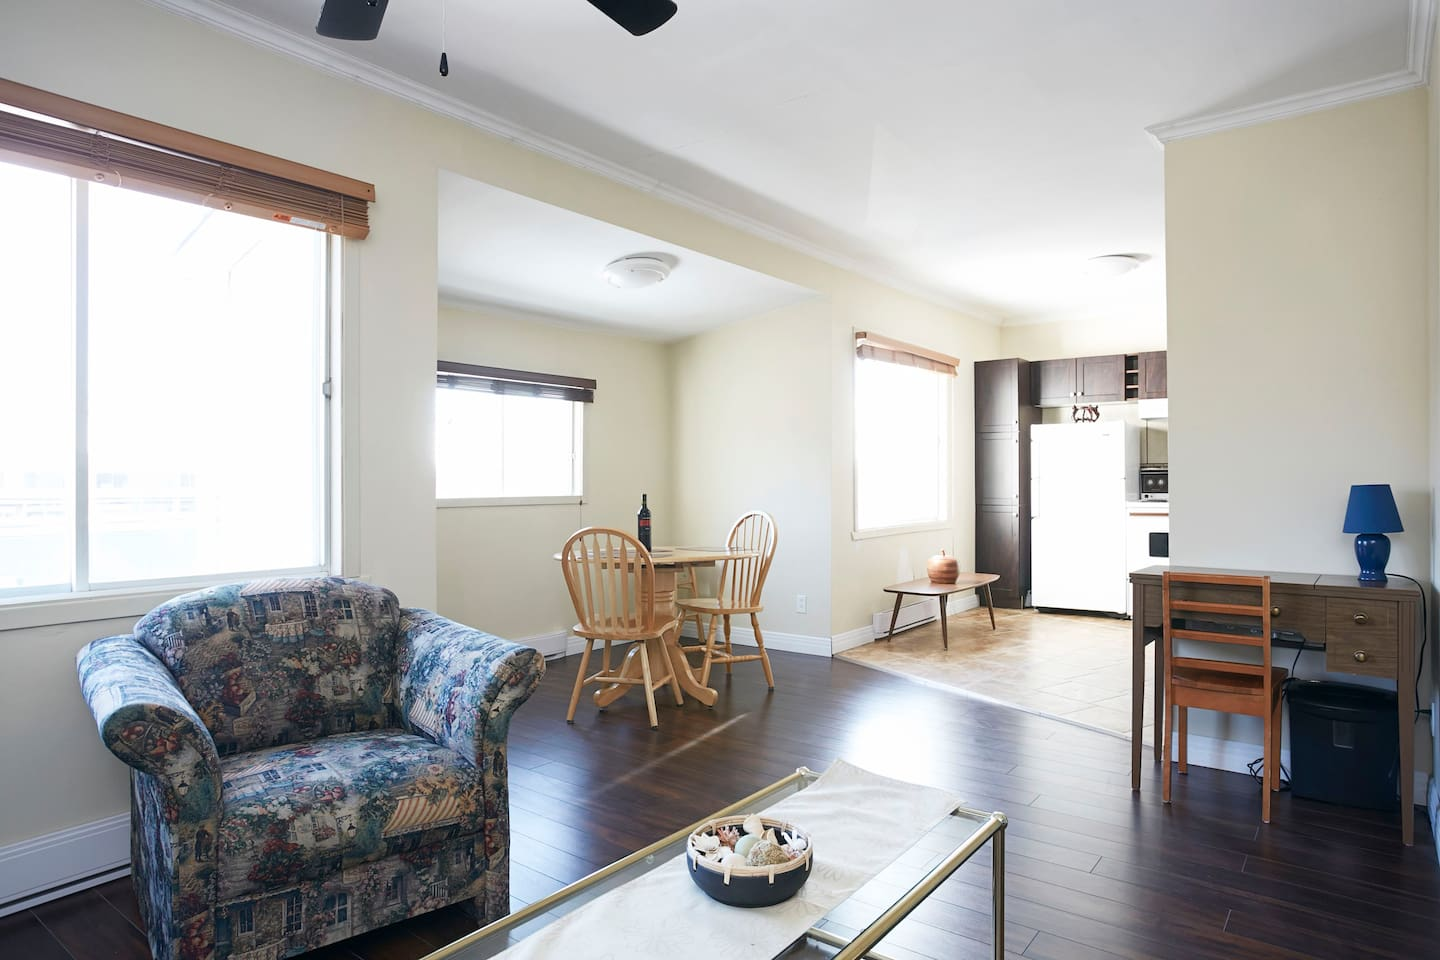 The apartment is the entire top floor. To give you an idea as to the size of the house, approximately 28' by 24'; excluding the storage space for cleaning supplies.